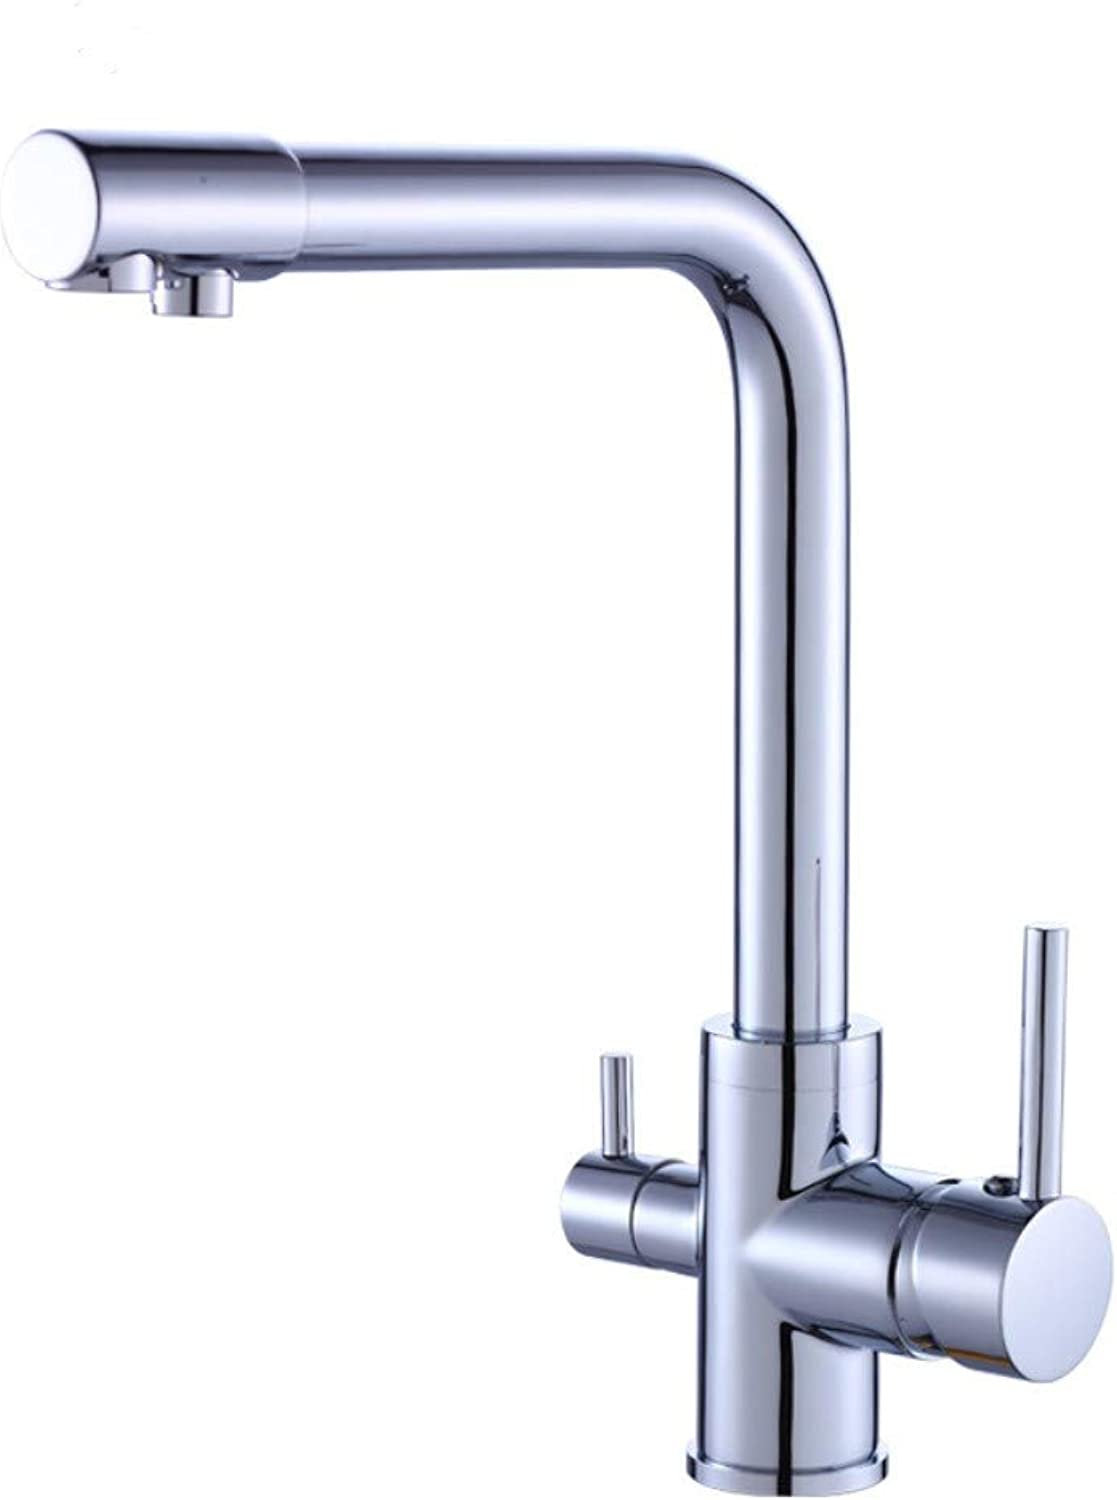 MAAXSingle Kitchen Faucet All Copper Water Purification Kitchen Faucet hot and Cold Single Kitchen Manufacturer hot